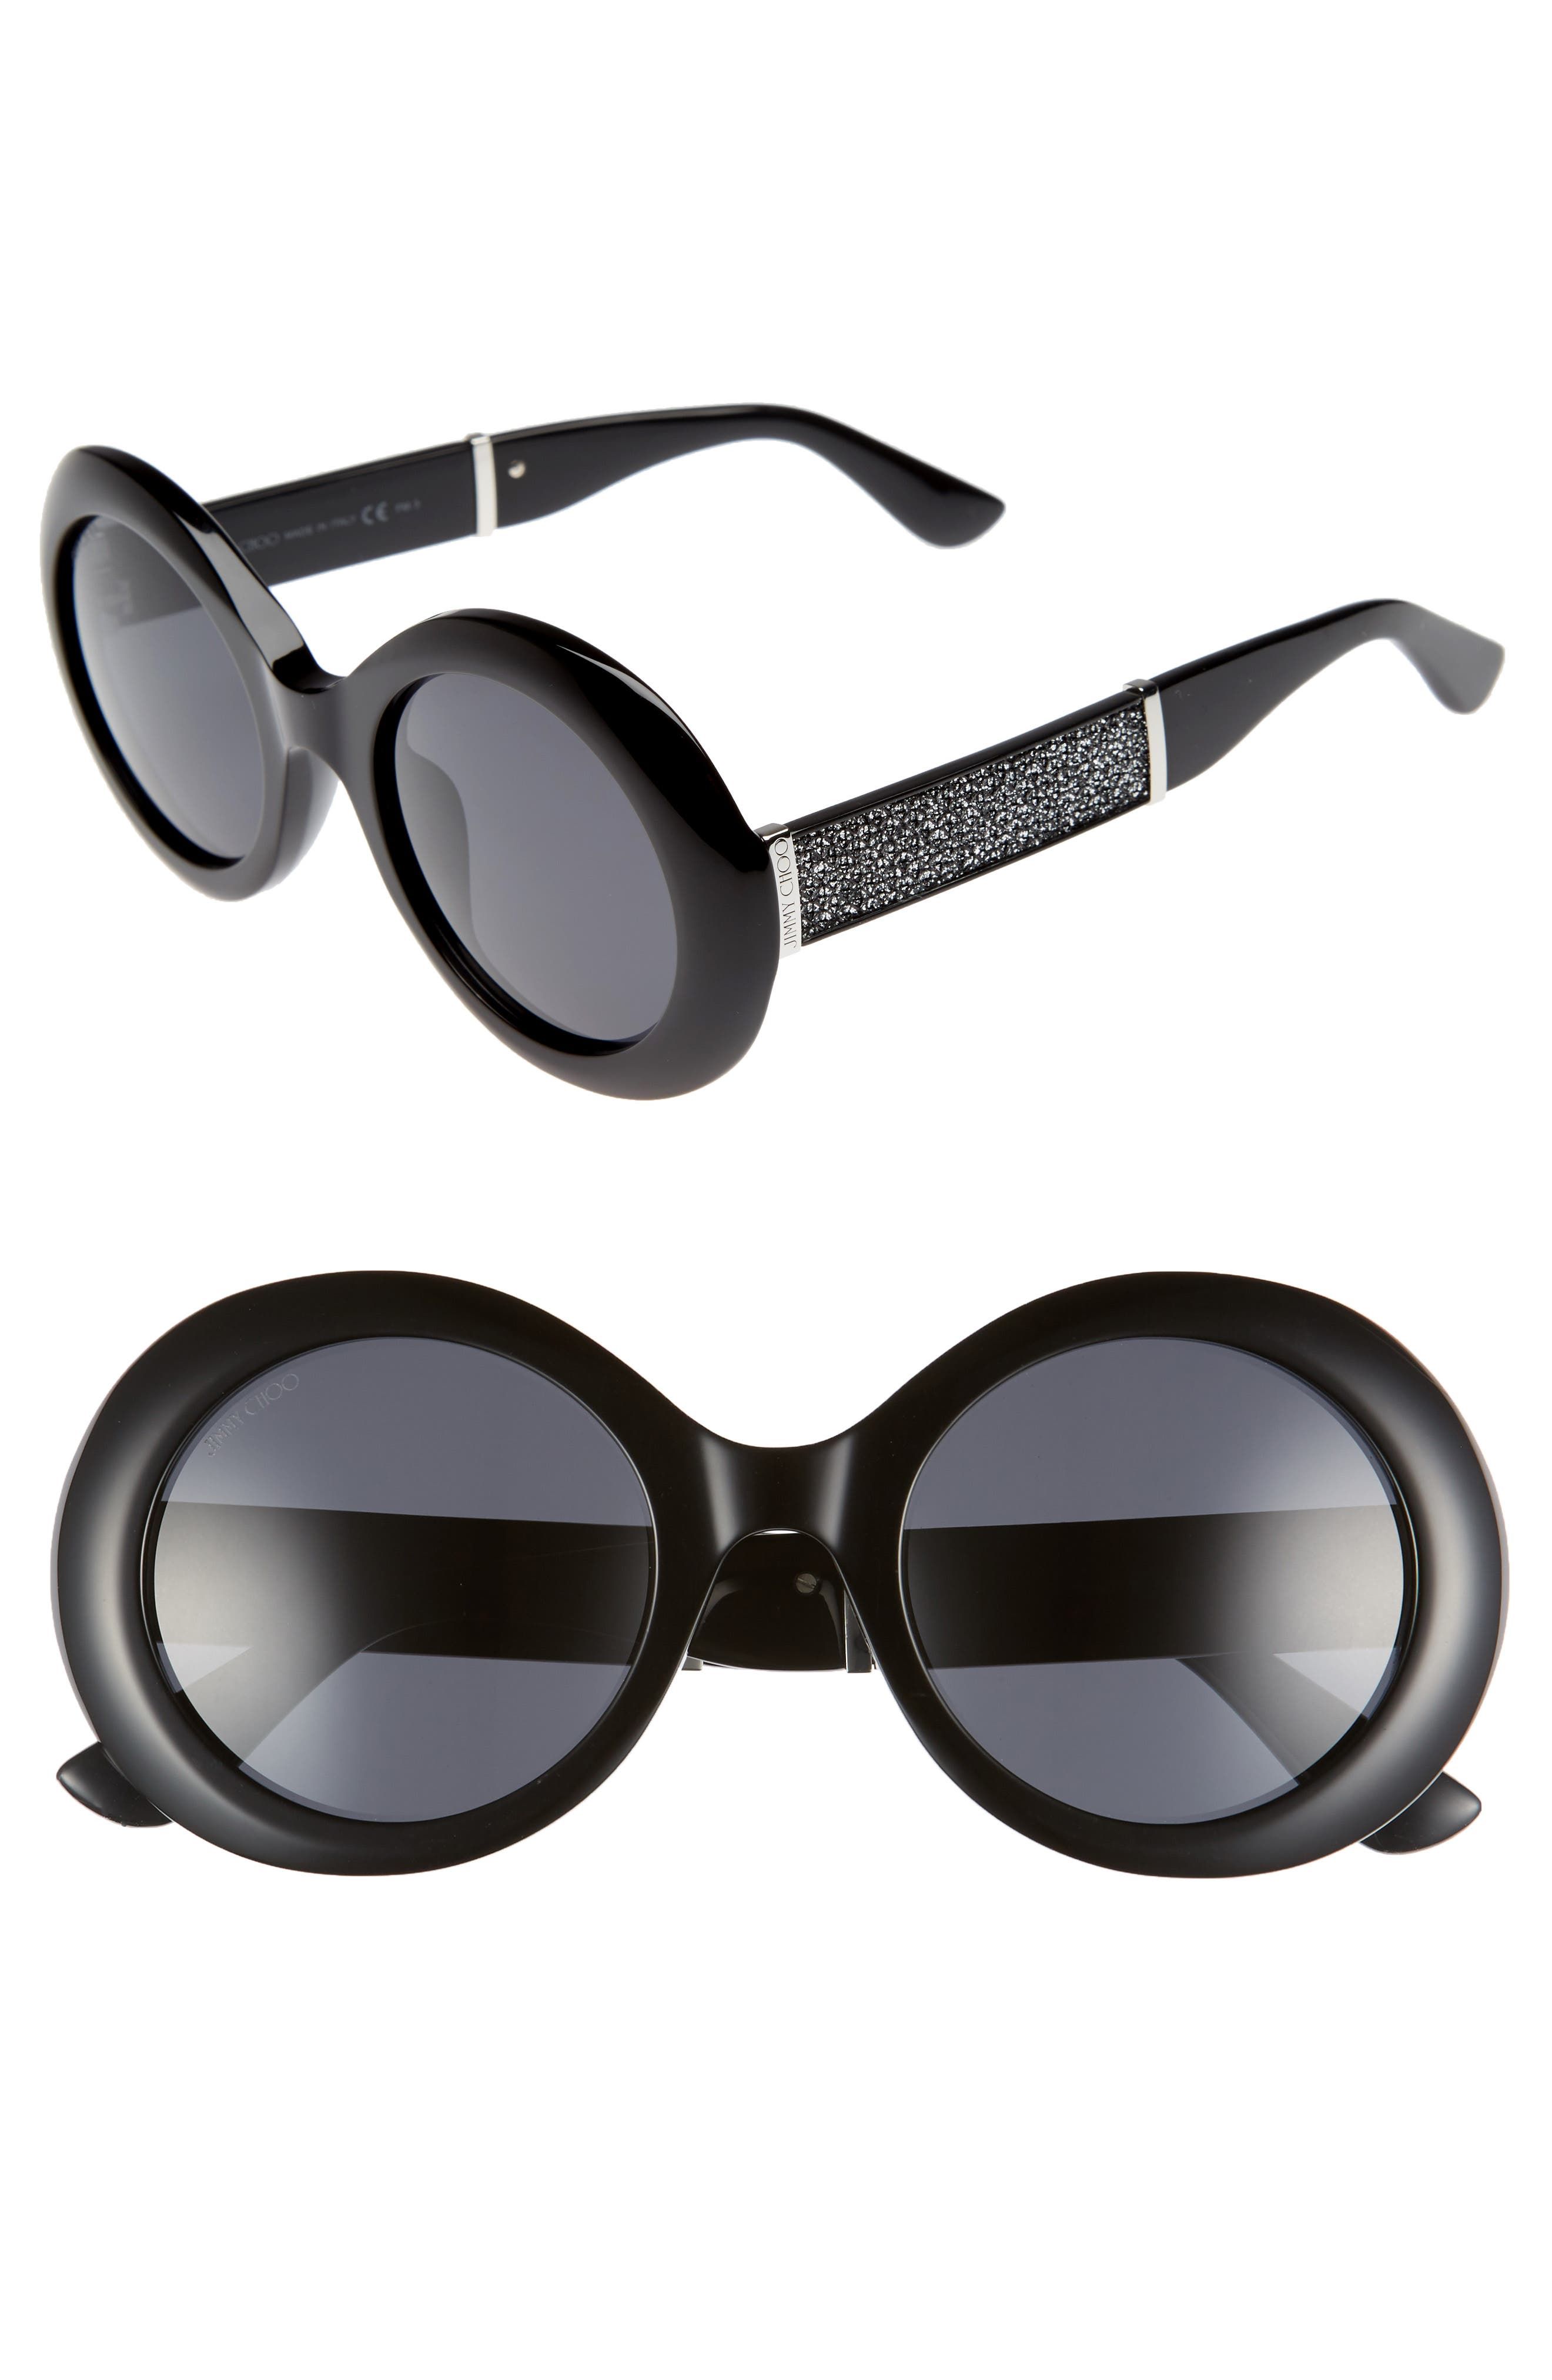 Wendy 51mm Round Sunglasses,                             Main thumbnail 1, color,                             001